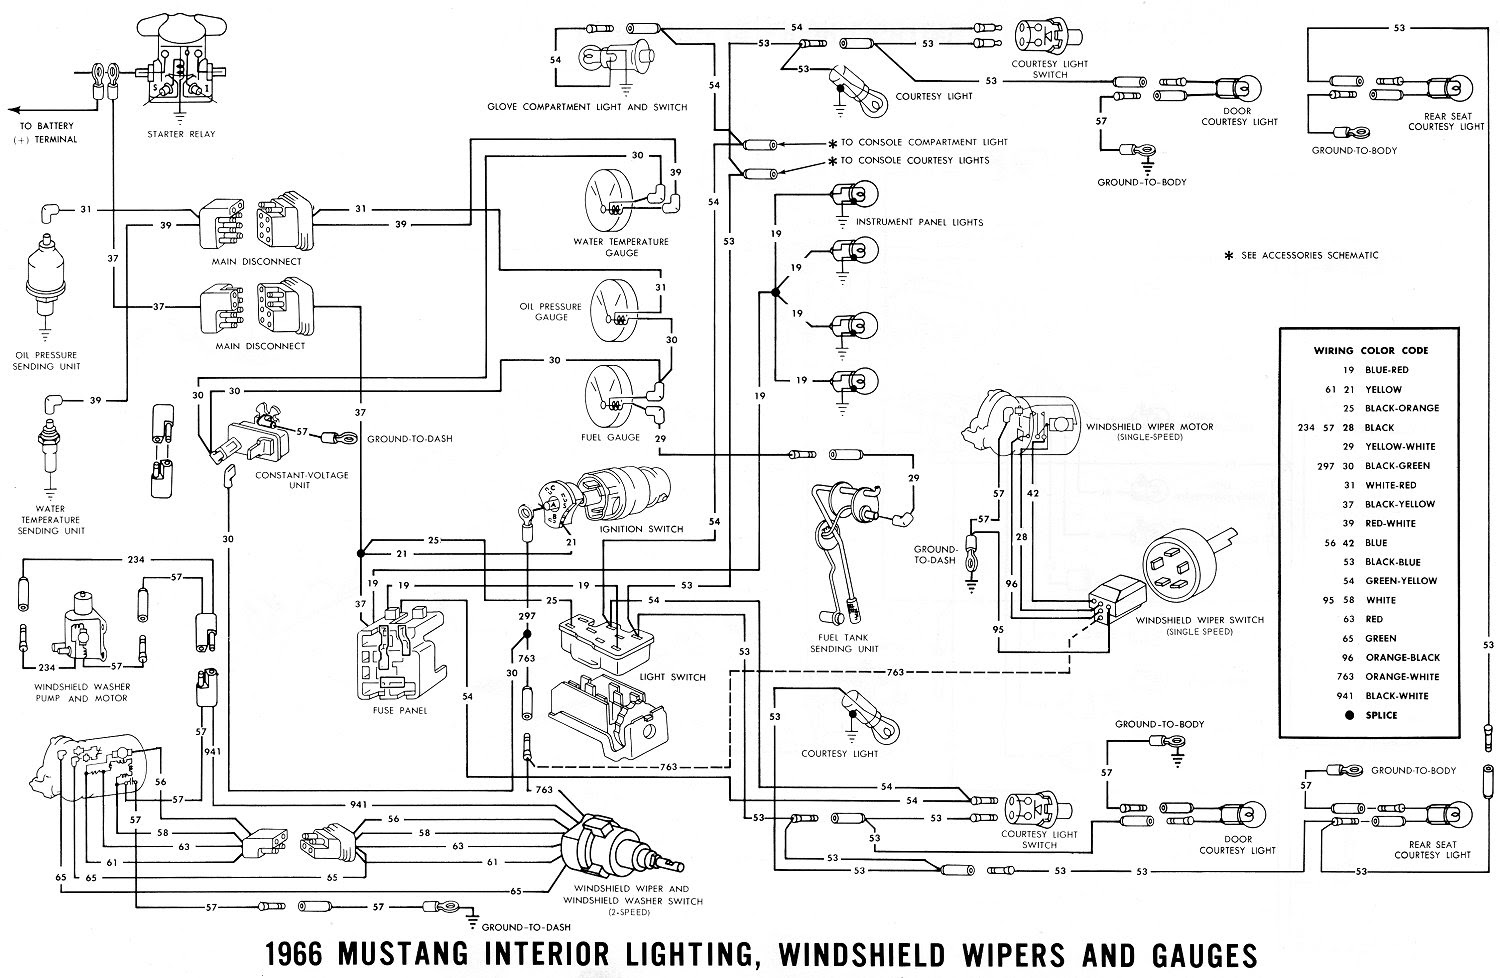 66 Mustang Instrument Cluster Wiring Diagram Wiring Diagram View A View A Zaafran It